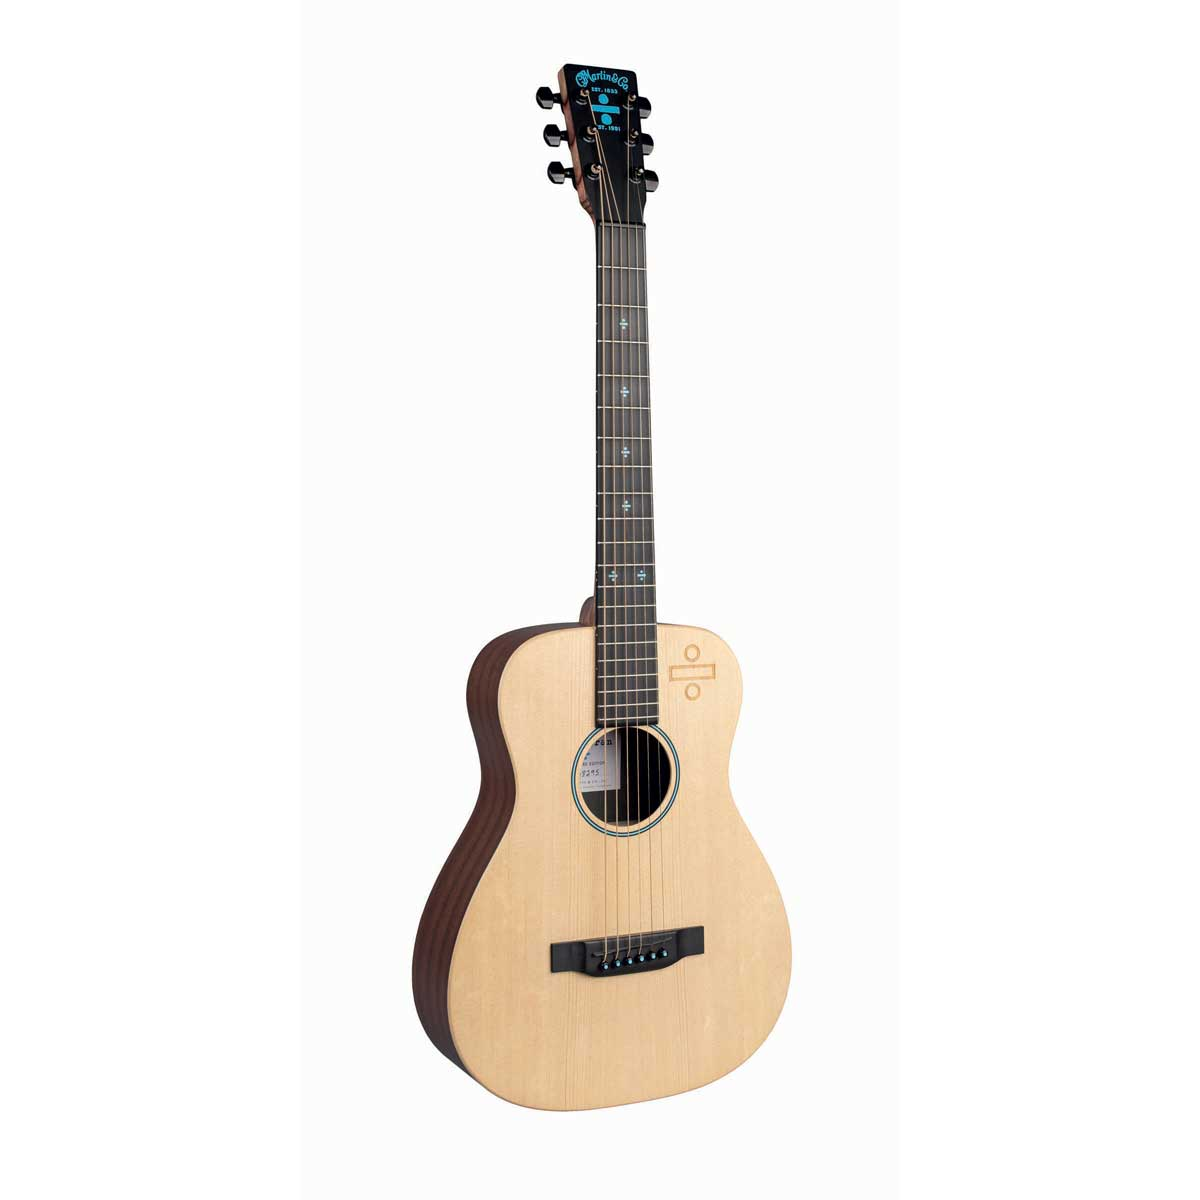 Martin Ed Sheeran ÷ Signature Edition 3 western-guitar